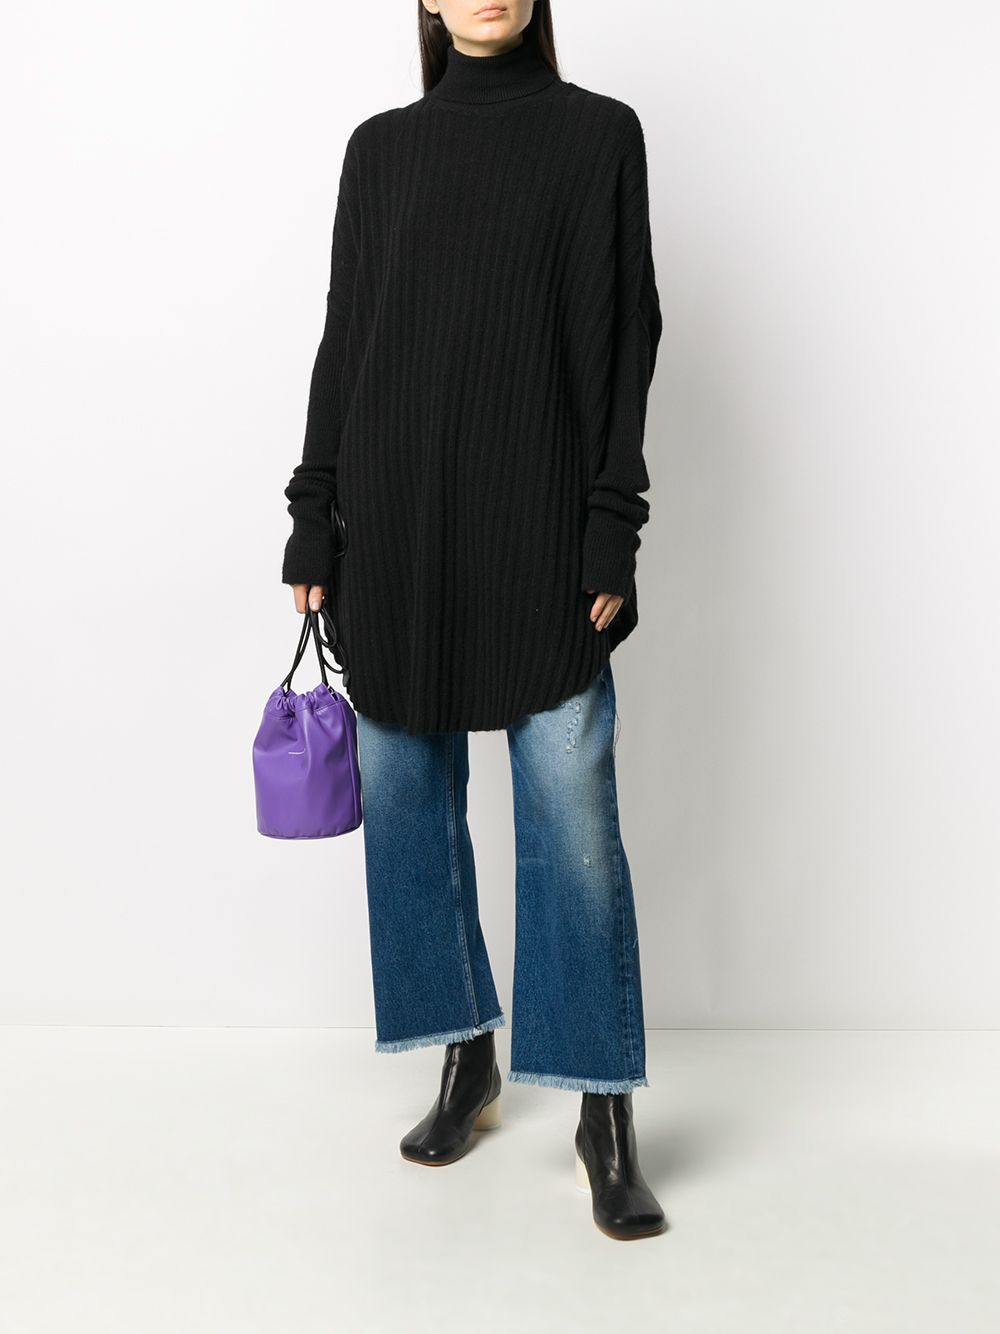 MM6 WOMEN KNIT OVERSIZE TURTLENECK SWEATER